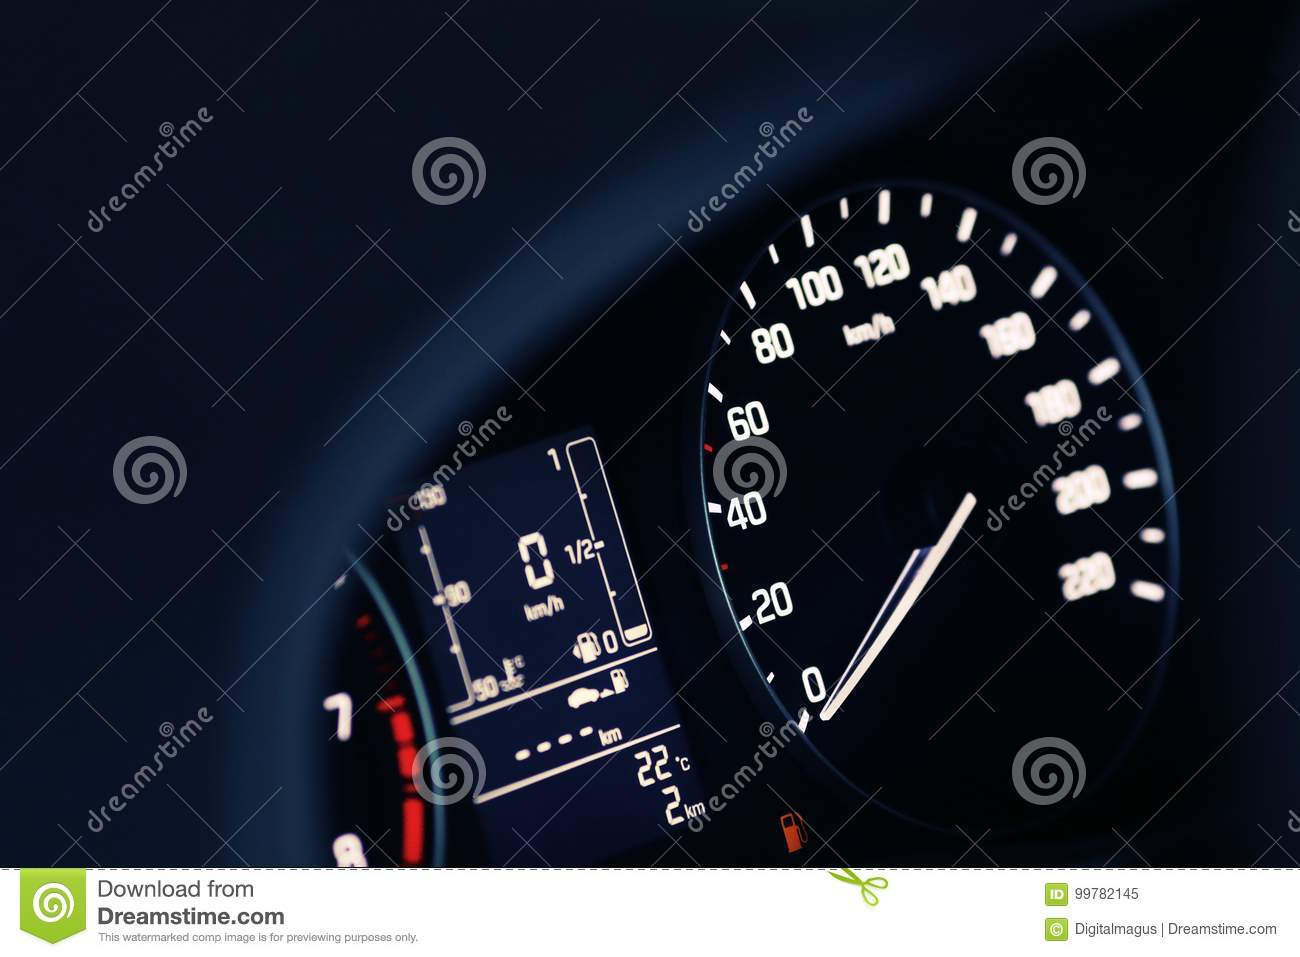 Empty Tank Indicator On Car Dashboard Stock Image - Image of